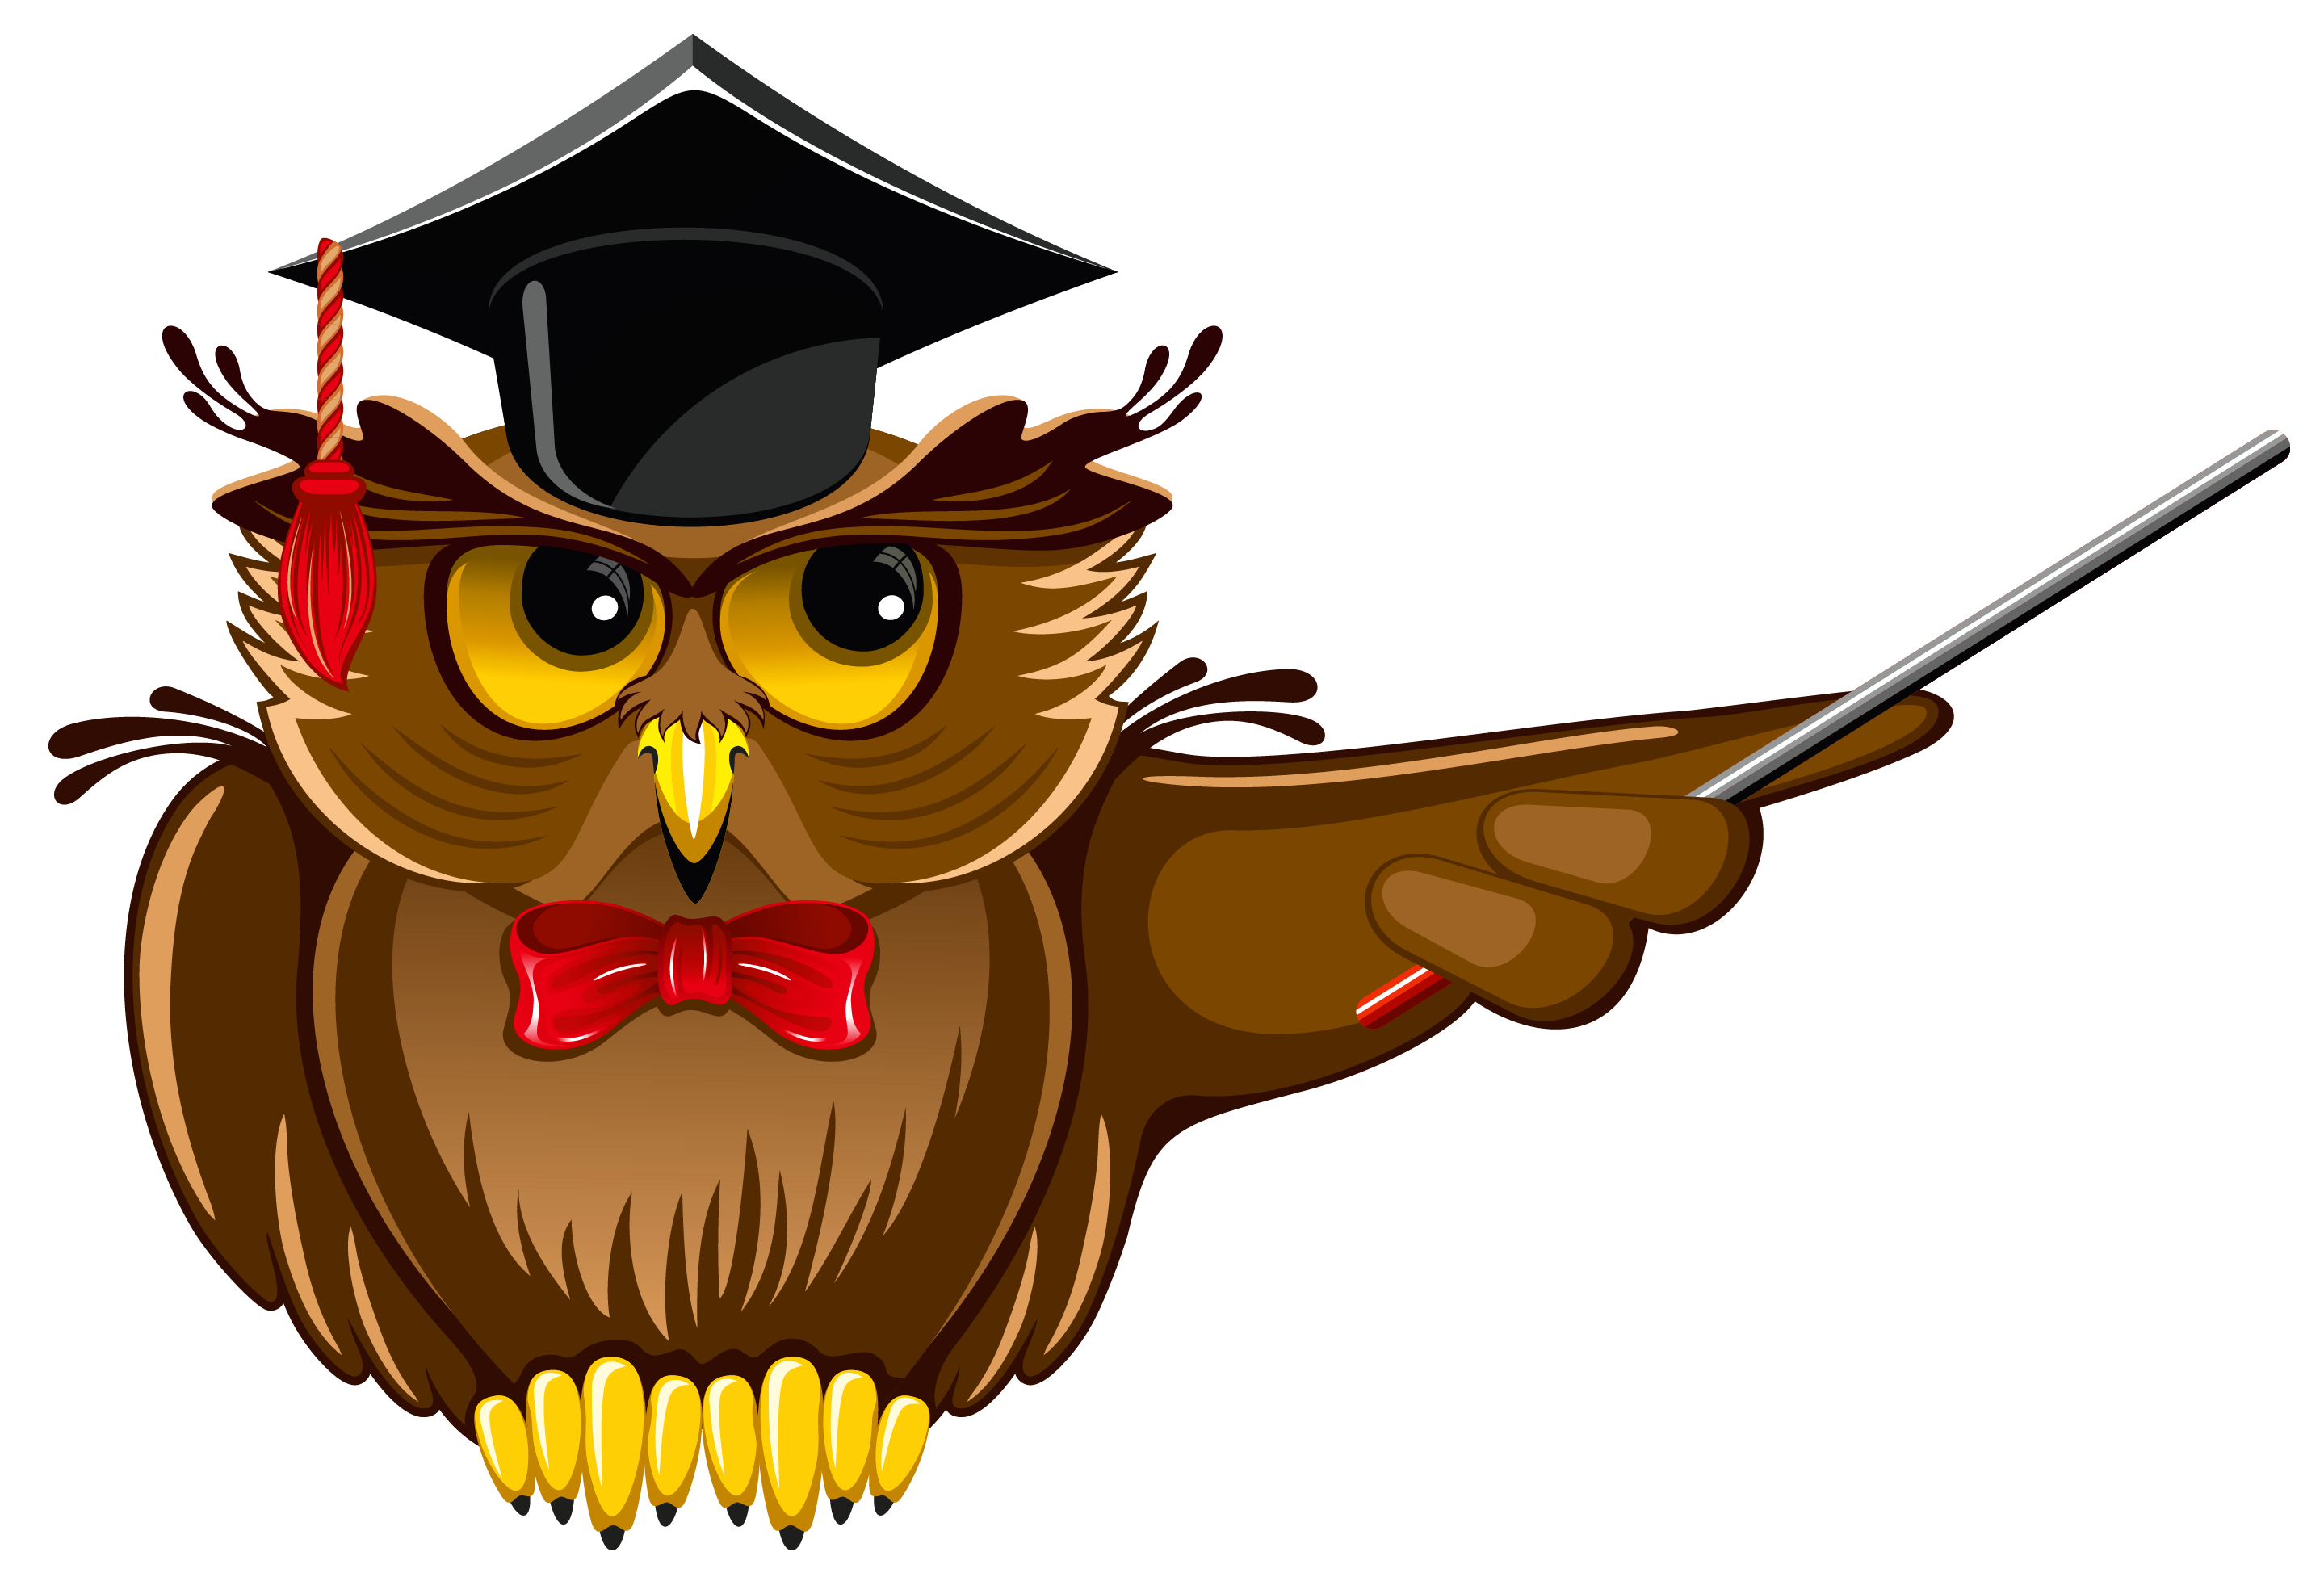 Owls clipart education. Doctorate academic degree doctor